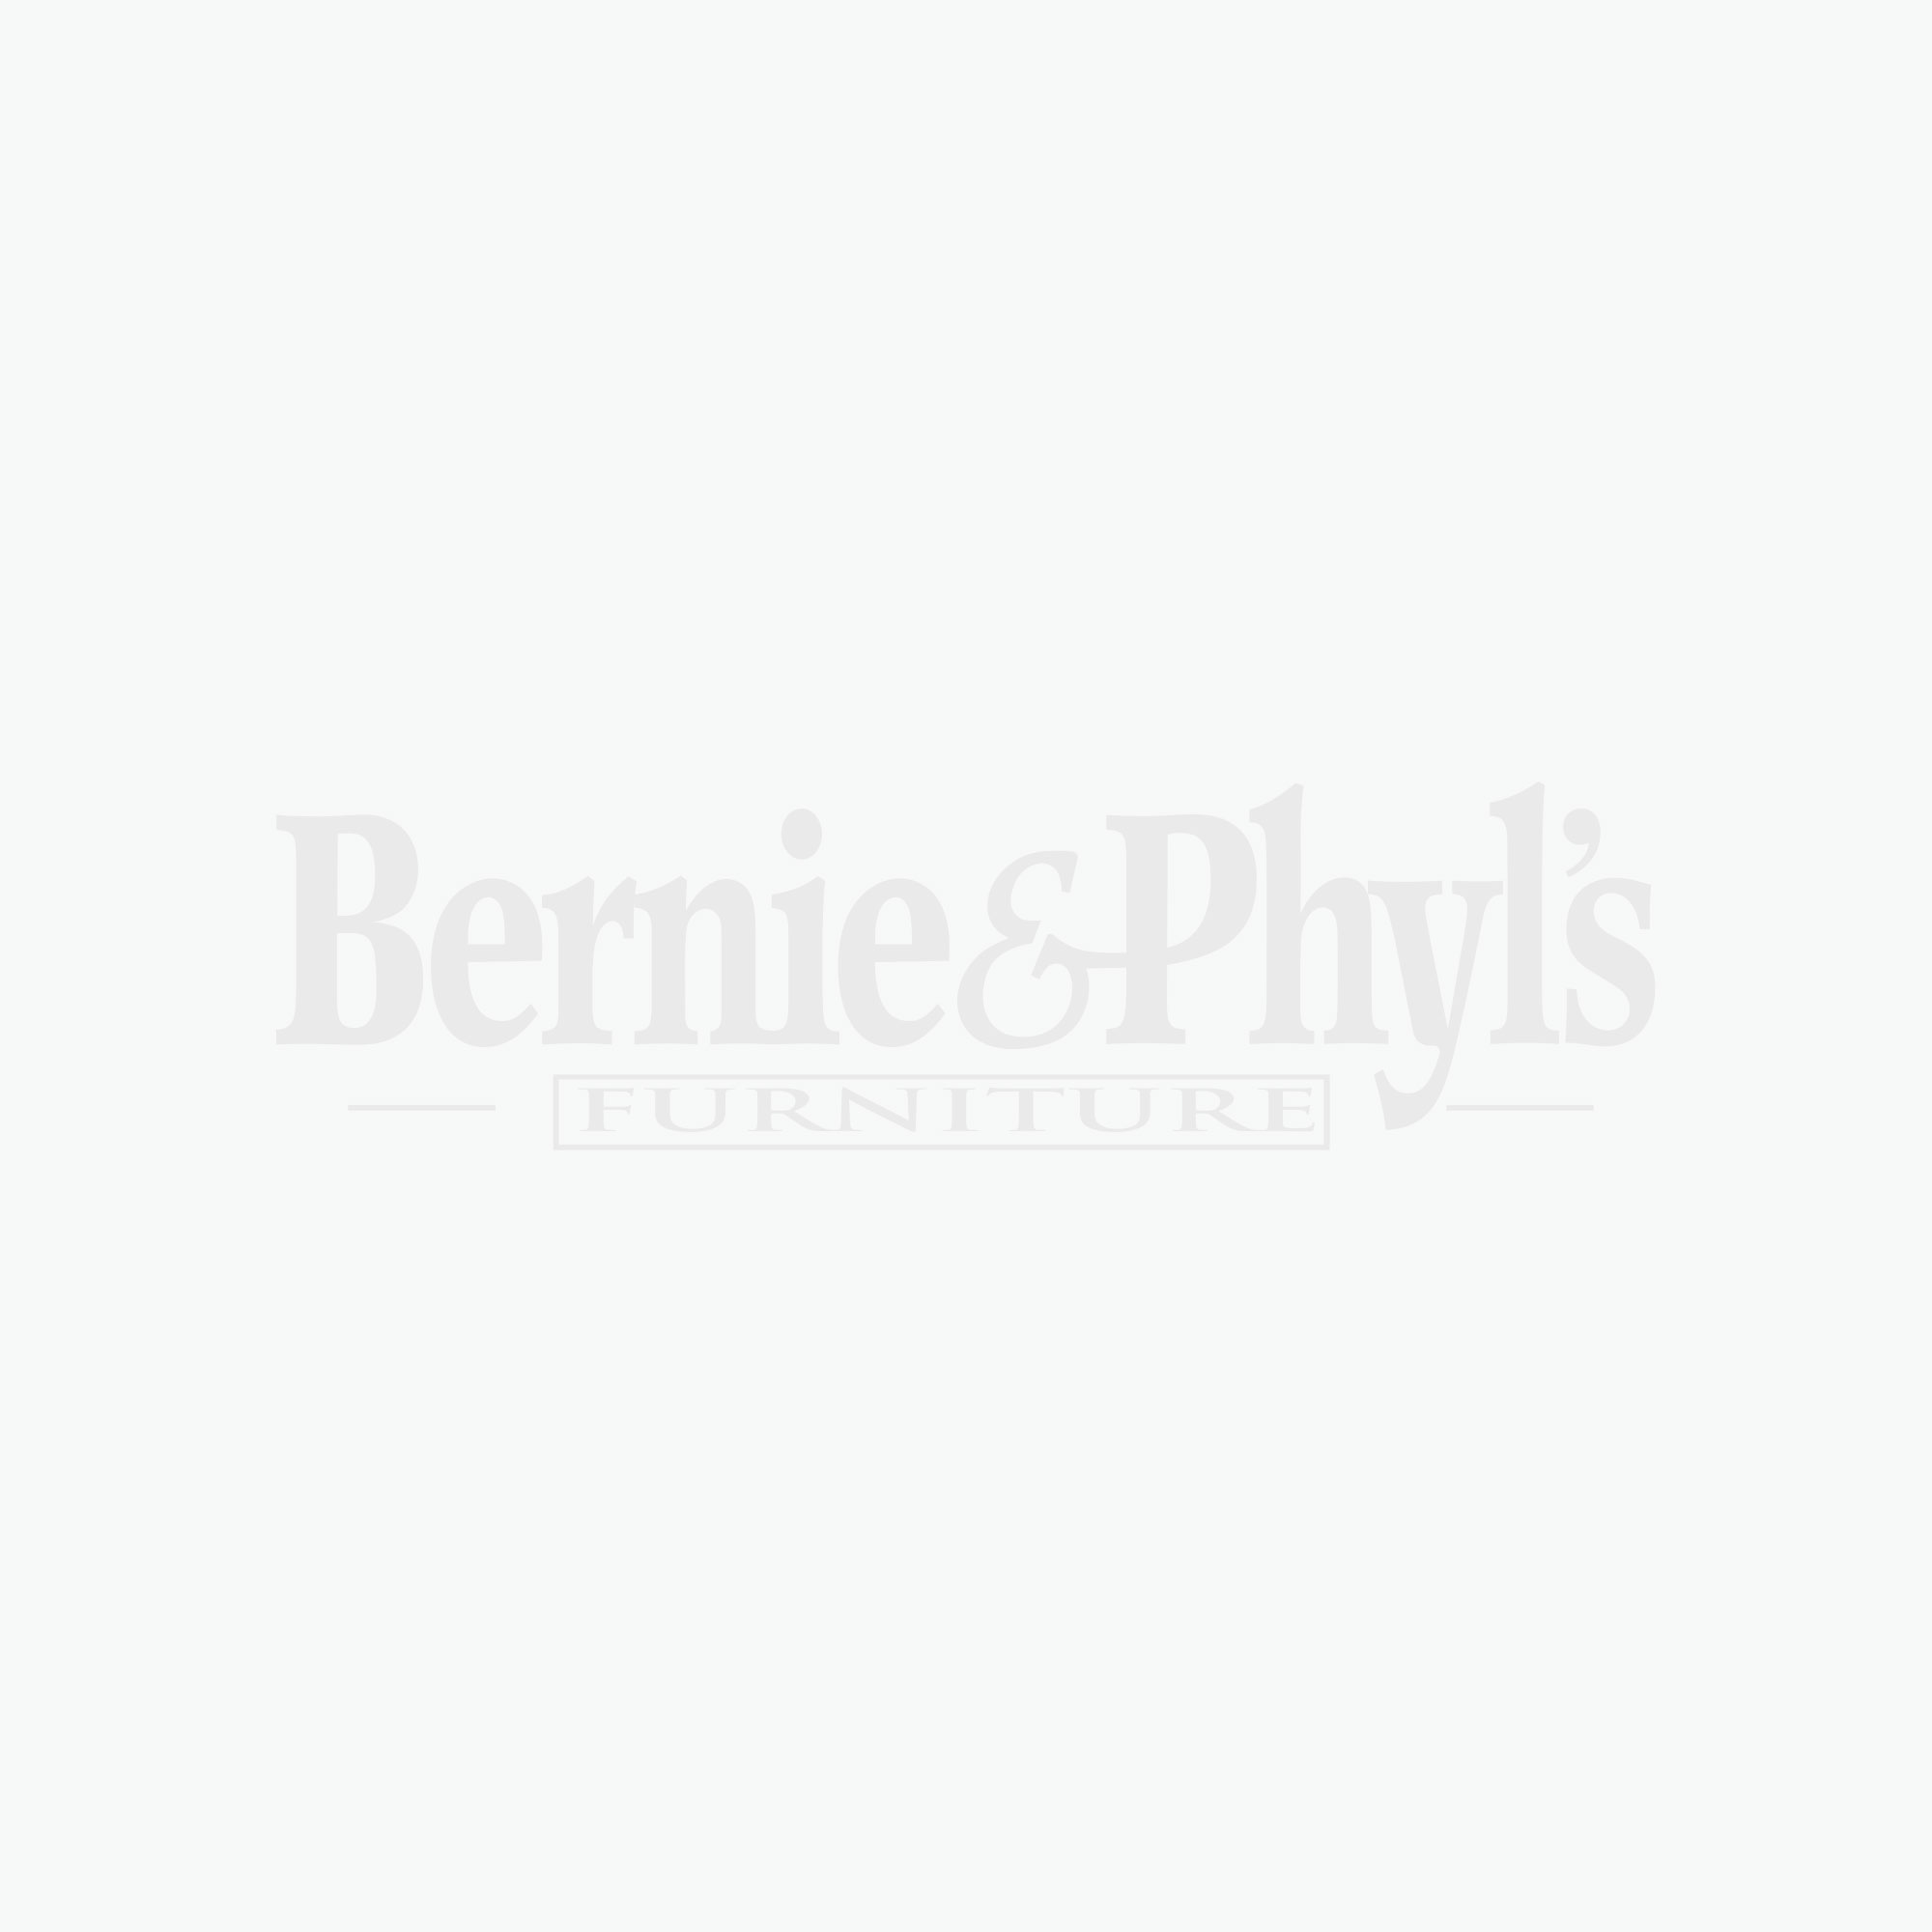 Sunbrella Natalie Power Reclining Loveseat Loveseats Living Room Bernie Phyl S Furniture By England Furniture